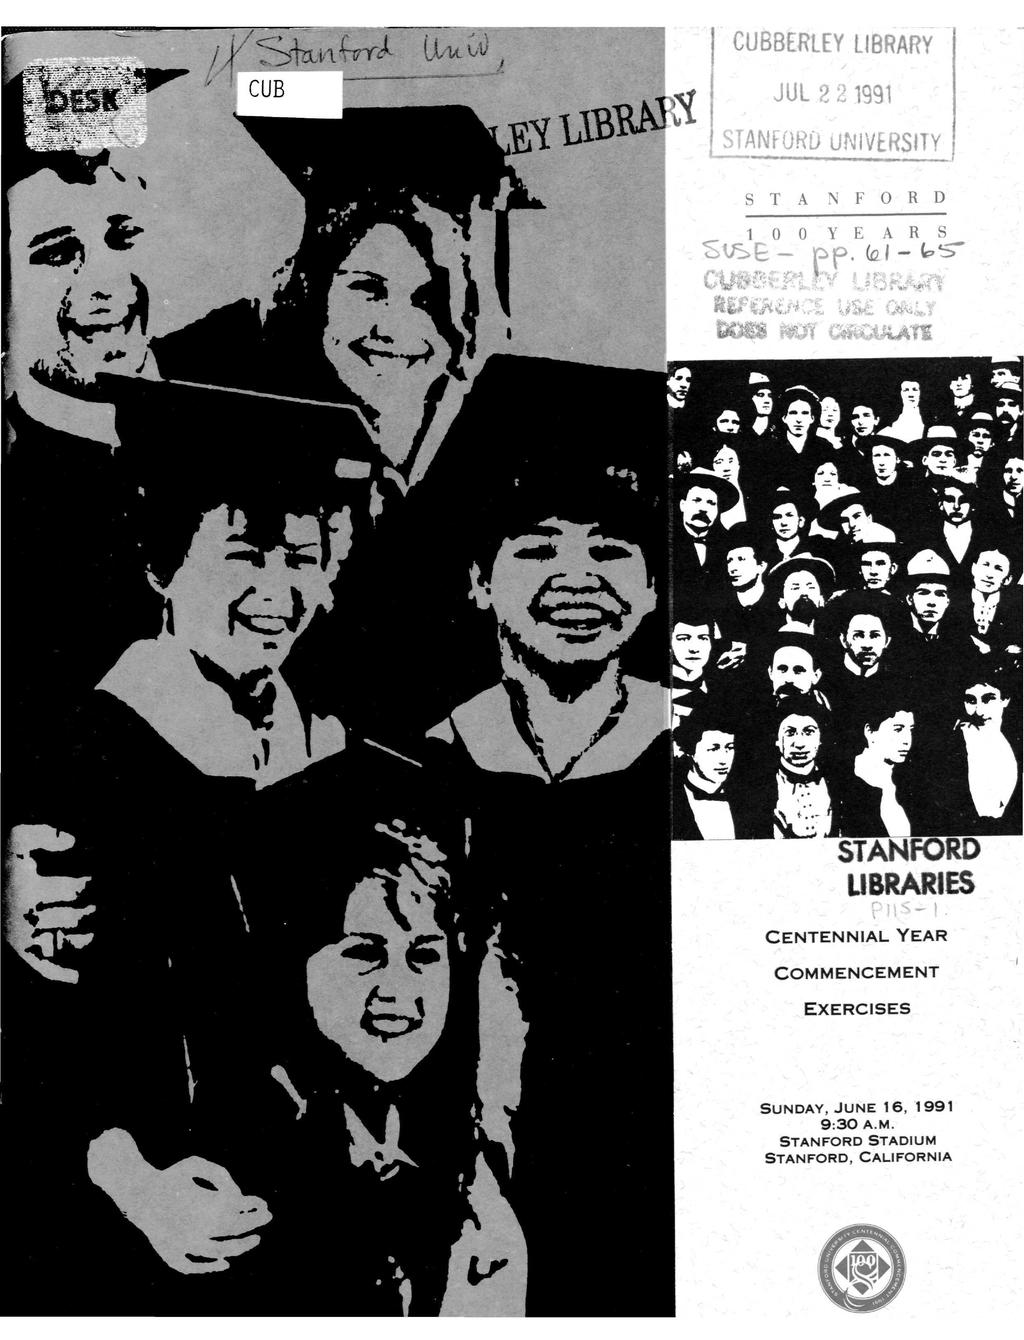 B Stanford Libraries Centennial Year Commencement Exercises Wikipremed Mcat Course Image Archive Circuit Symbol For An Inductor Cubberley Library Jul221991 University S T A N F O R D 1 0 Y E Pp C